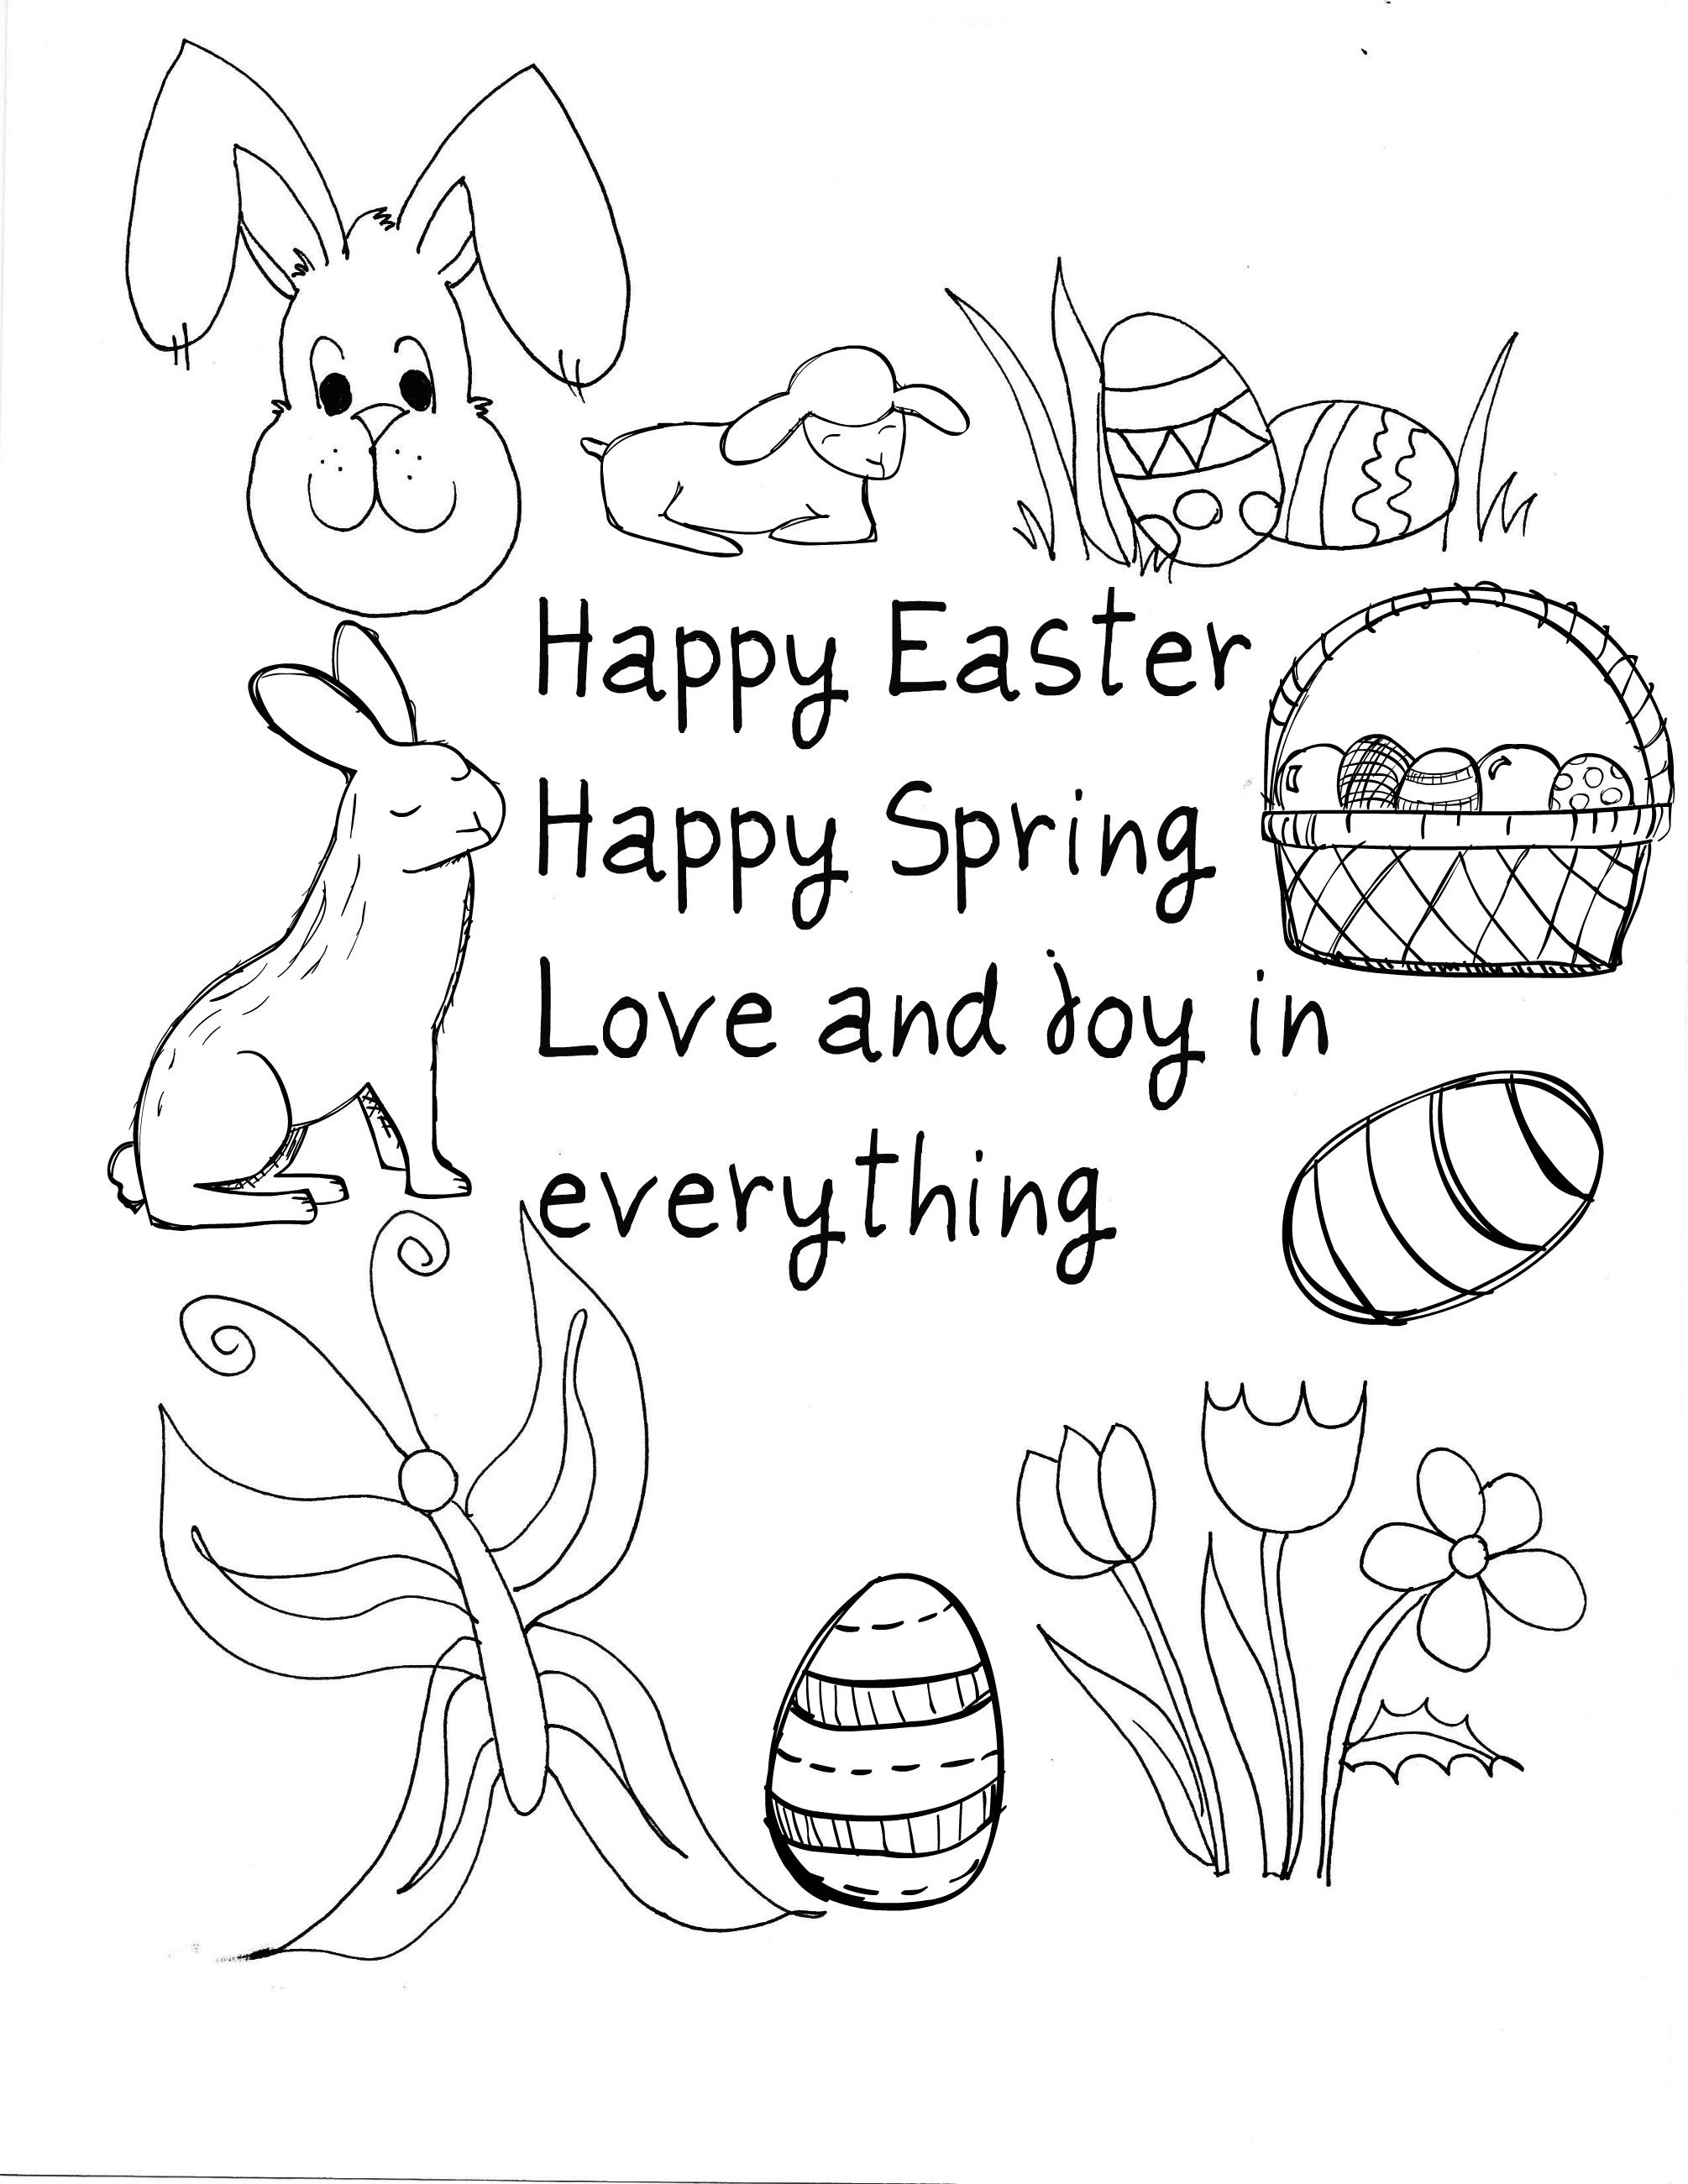 38 Happy Easter Coloring Page Happy Easter Wishes Free Coloring Download Of Easter Coloring14 Gallery